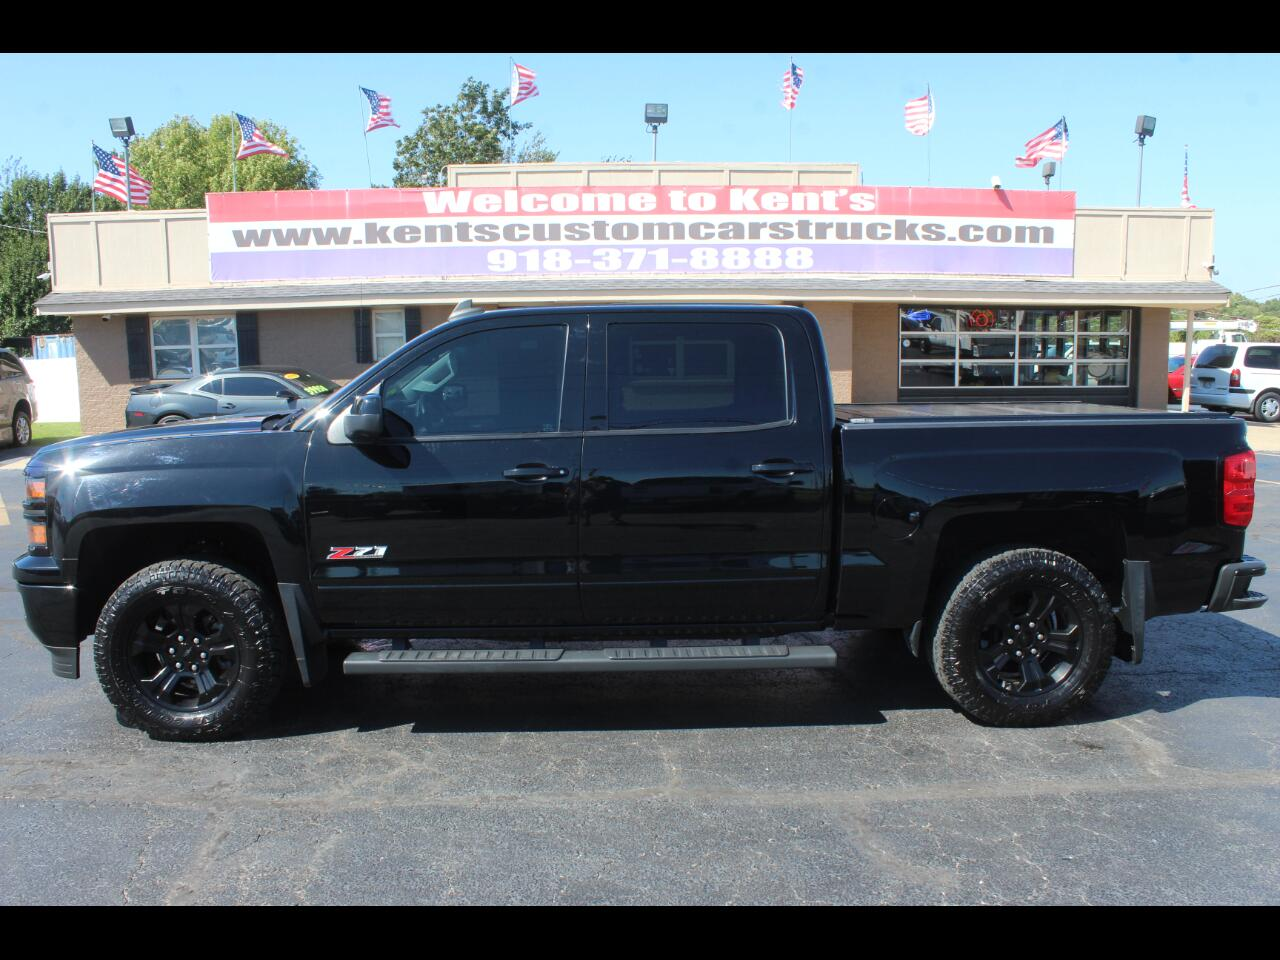 2015 Chevrolet Silverado 1500 LTZ Z71 Crew Cab 4WD 5.8 ft. Short Bed